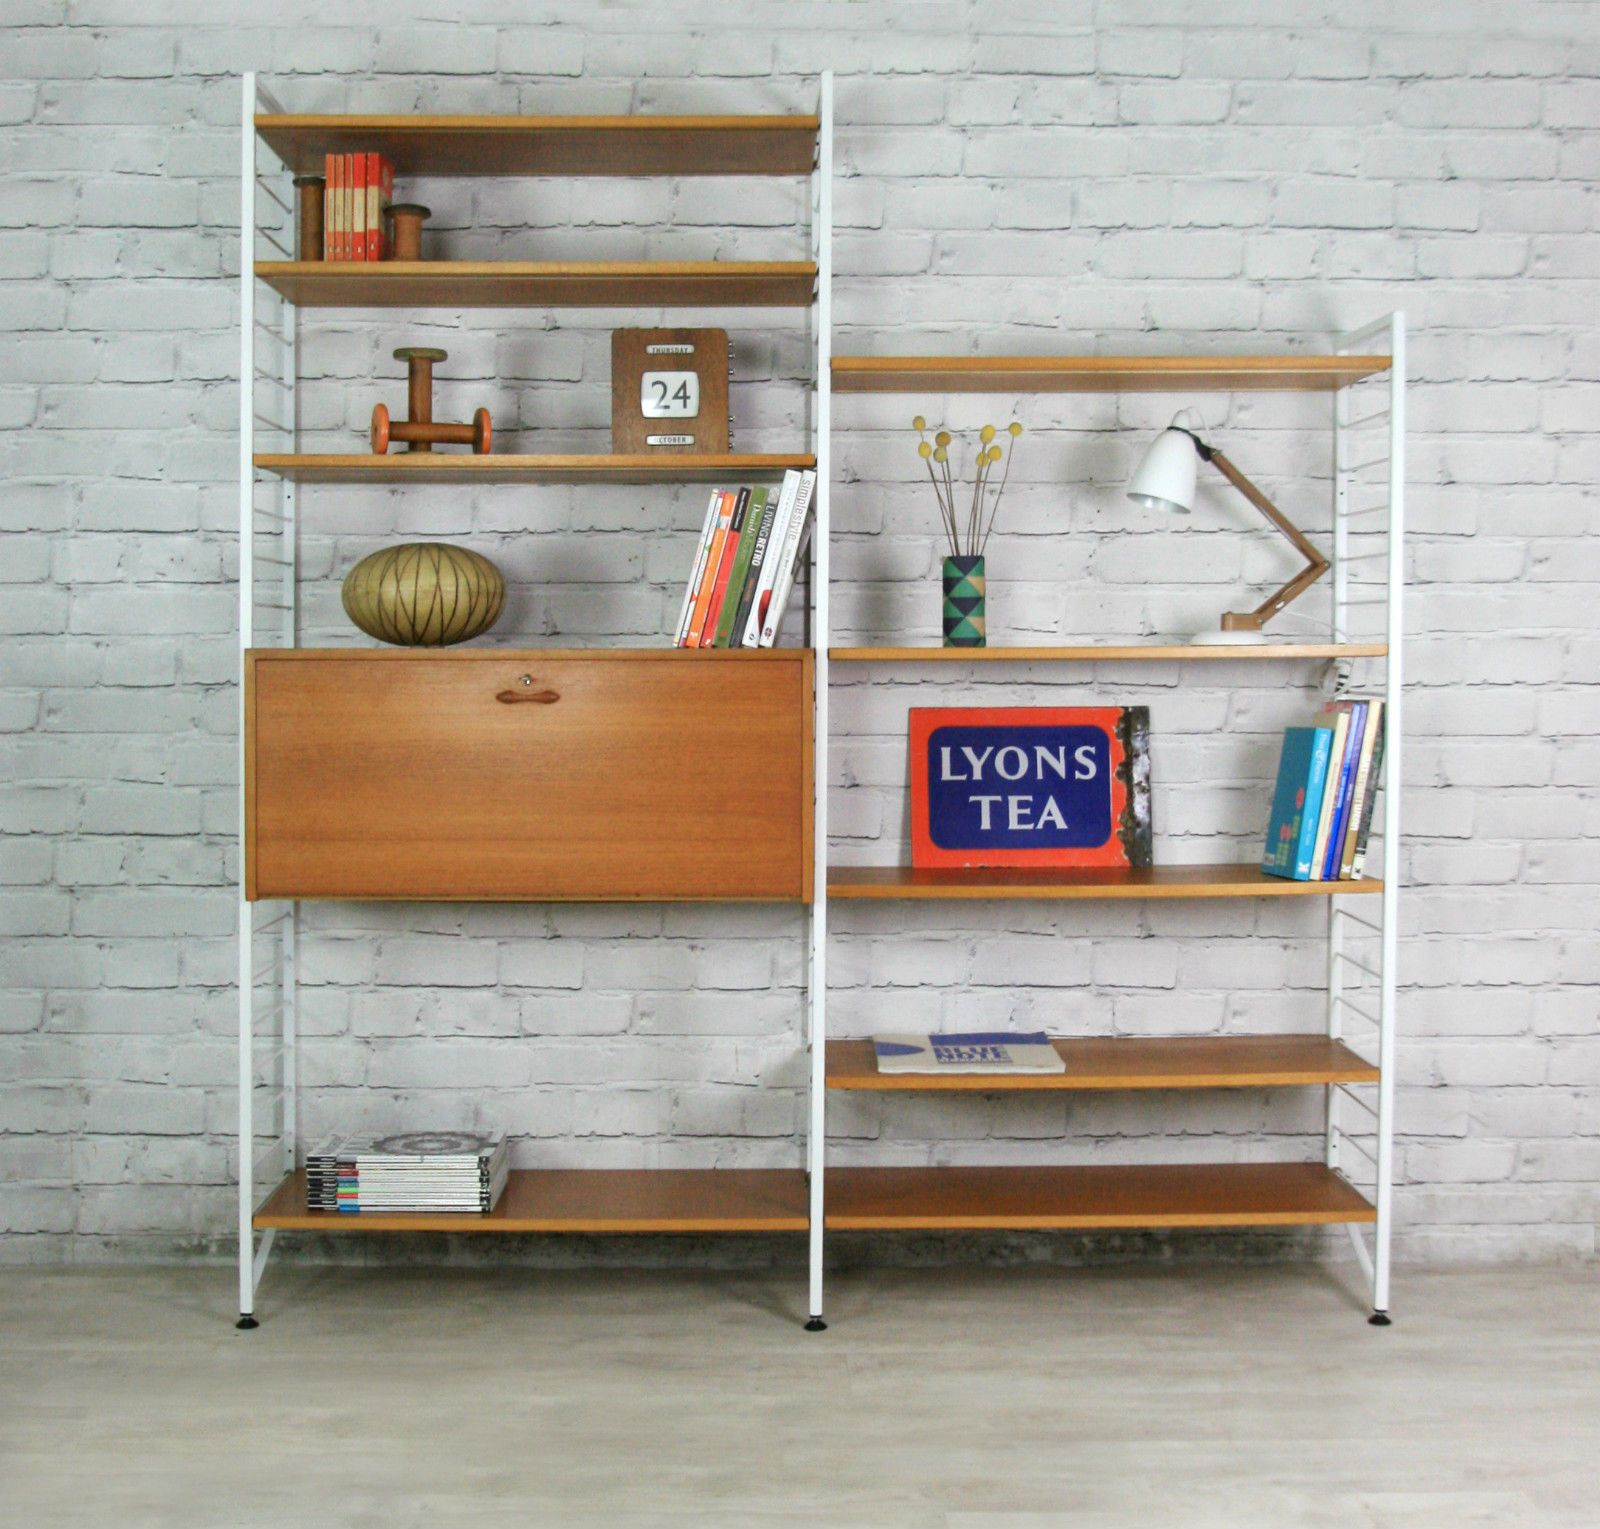 Swapping Windows And Adding Built Ins Possible Living: LADDERAX RETRO VINTAGE TEAK MID CENTURY WALL UNIT SHELVES